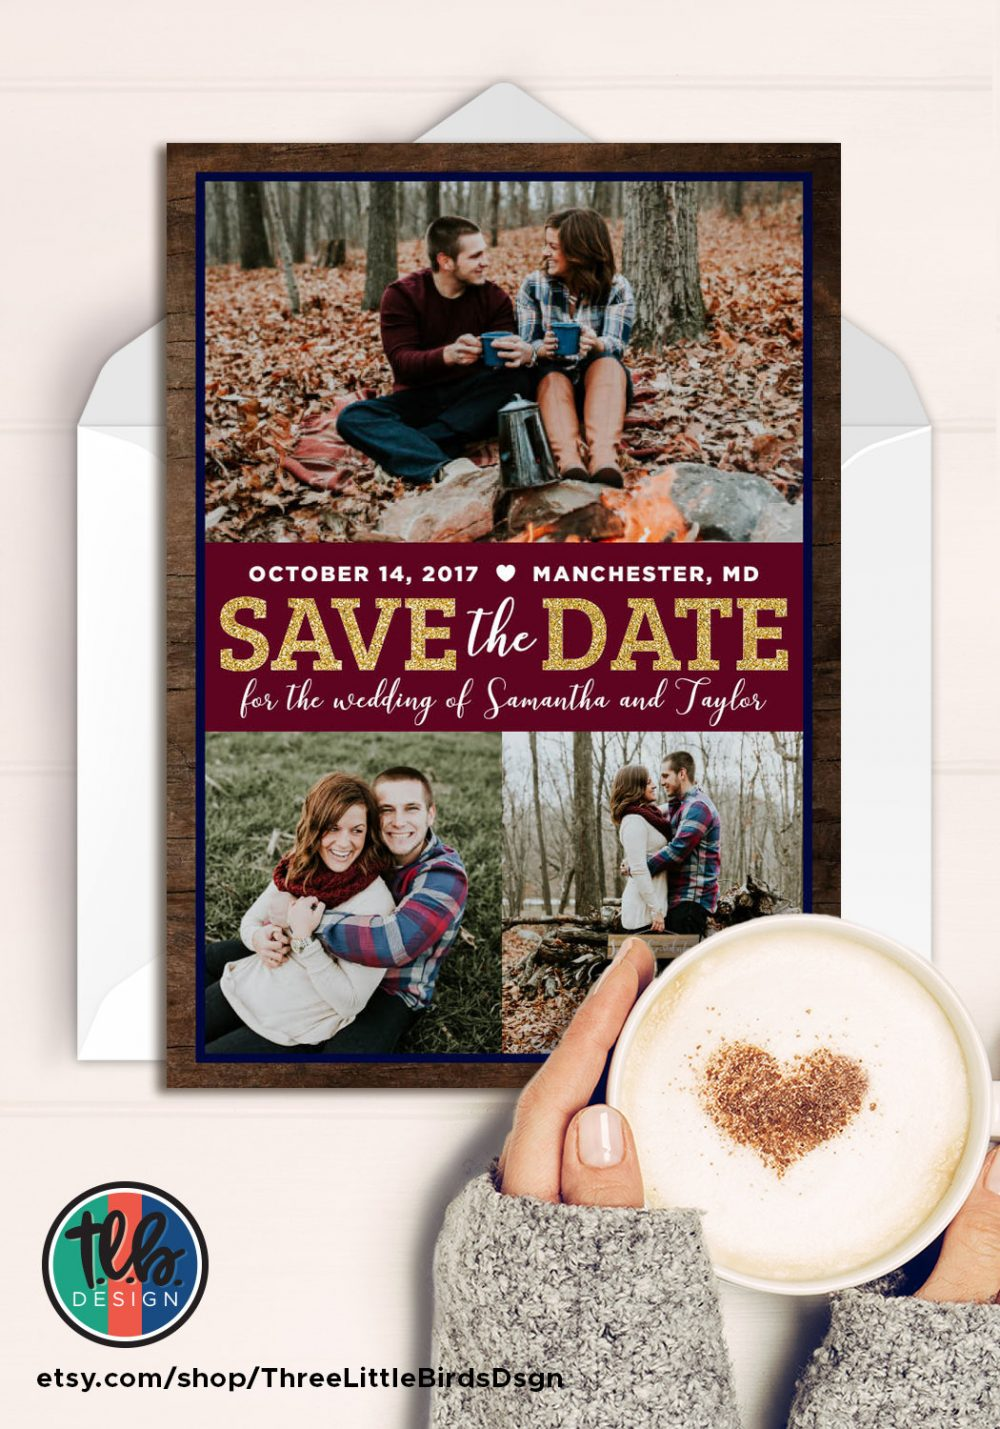 Multi Photo Rustic Save The Date Card Wedding Wood Gold Glitter Bordeaux Navy